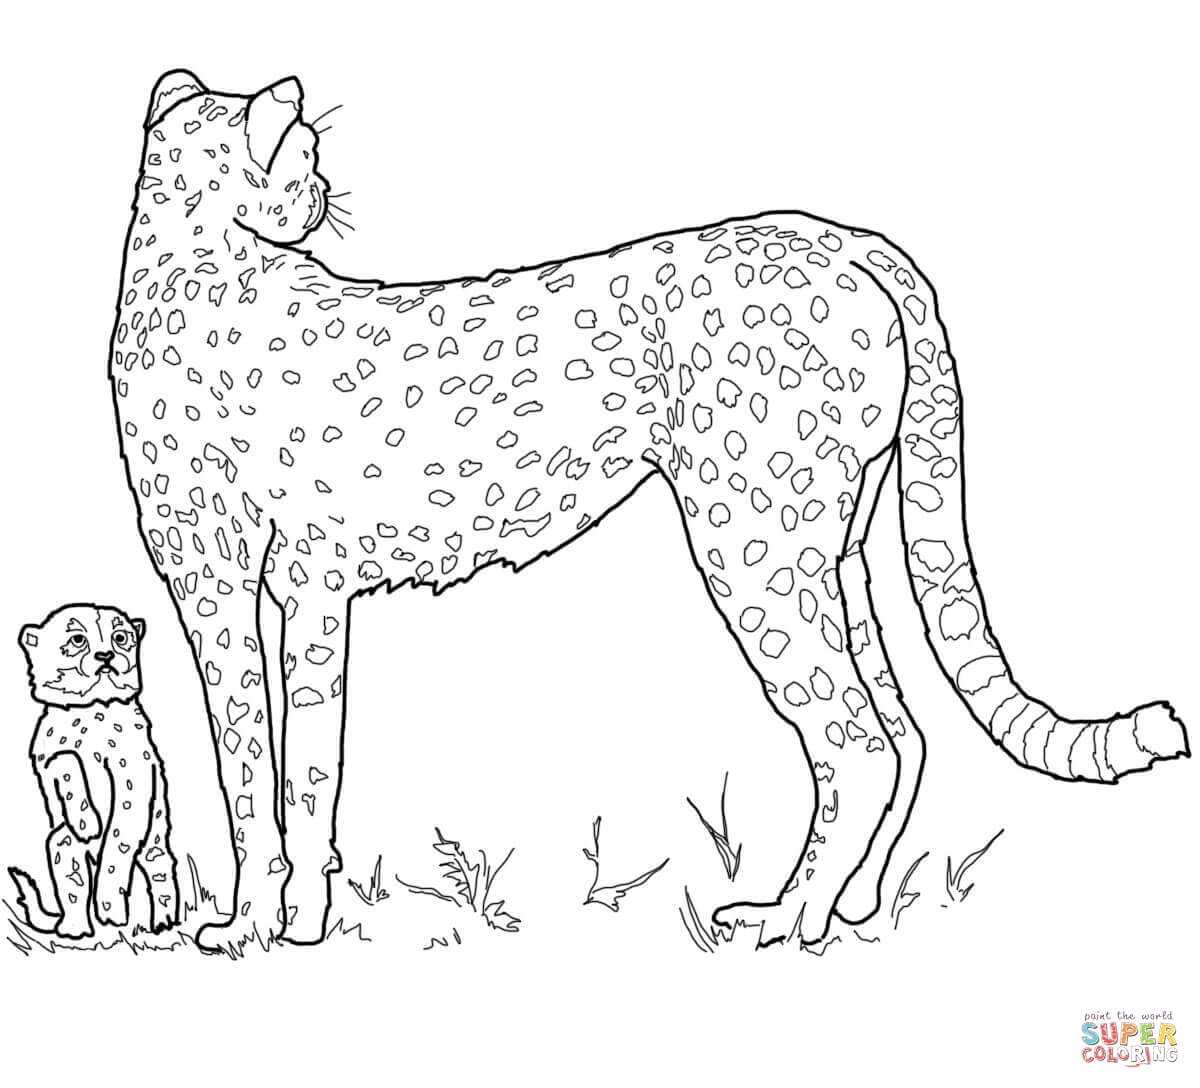 baby cheetah coloring pages get this cute baby cheetah coloring pages mt83n coloring cheetah pages baby